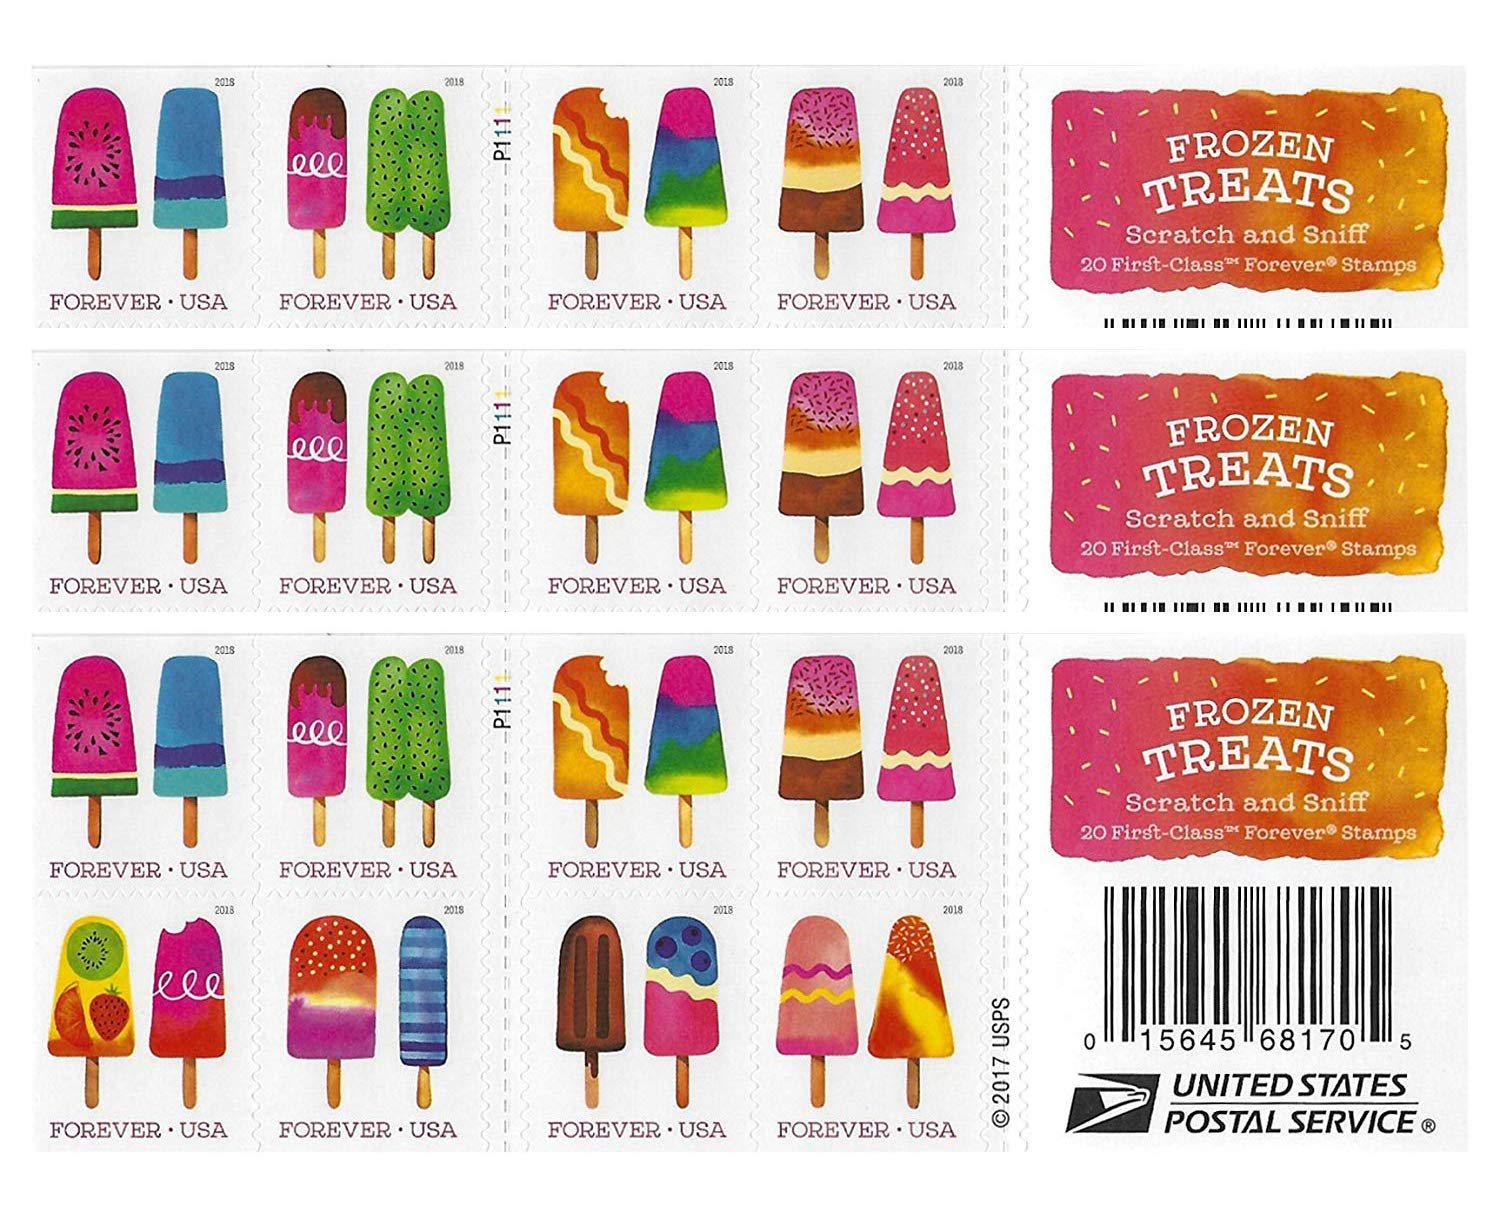 USPS The Frozen Treats Postage Stamps (Book of 60)